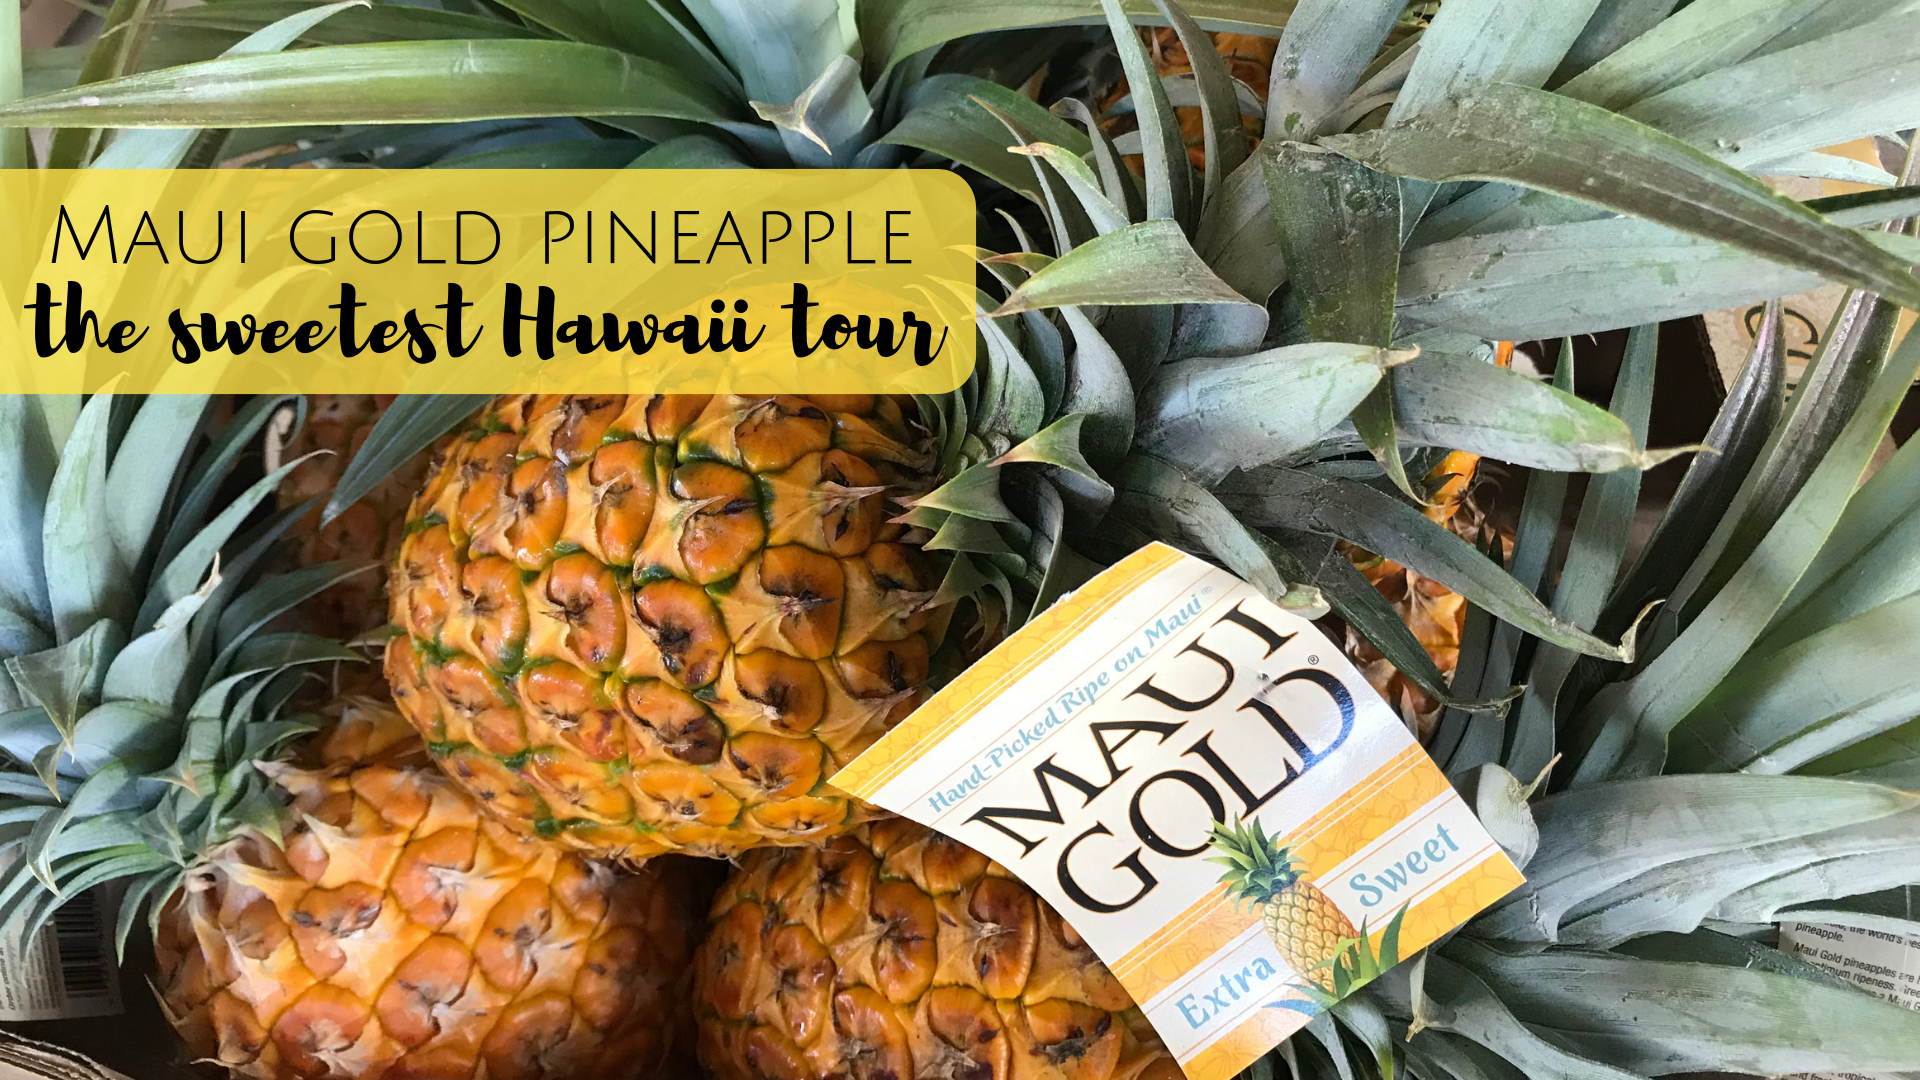 Maui Gold Pineapple Tours in Maui, Hawaii. The only pineapple farm tour in the US.